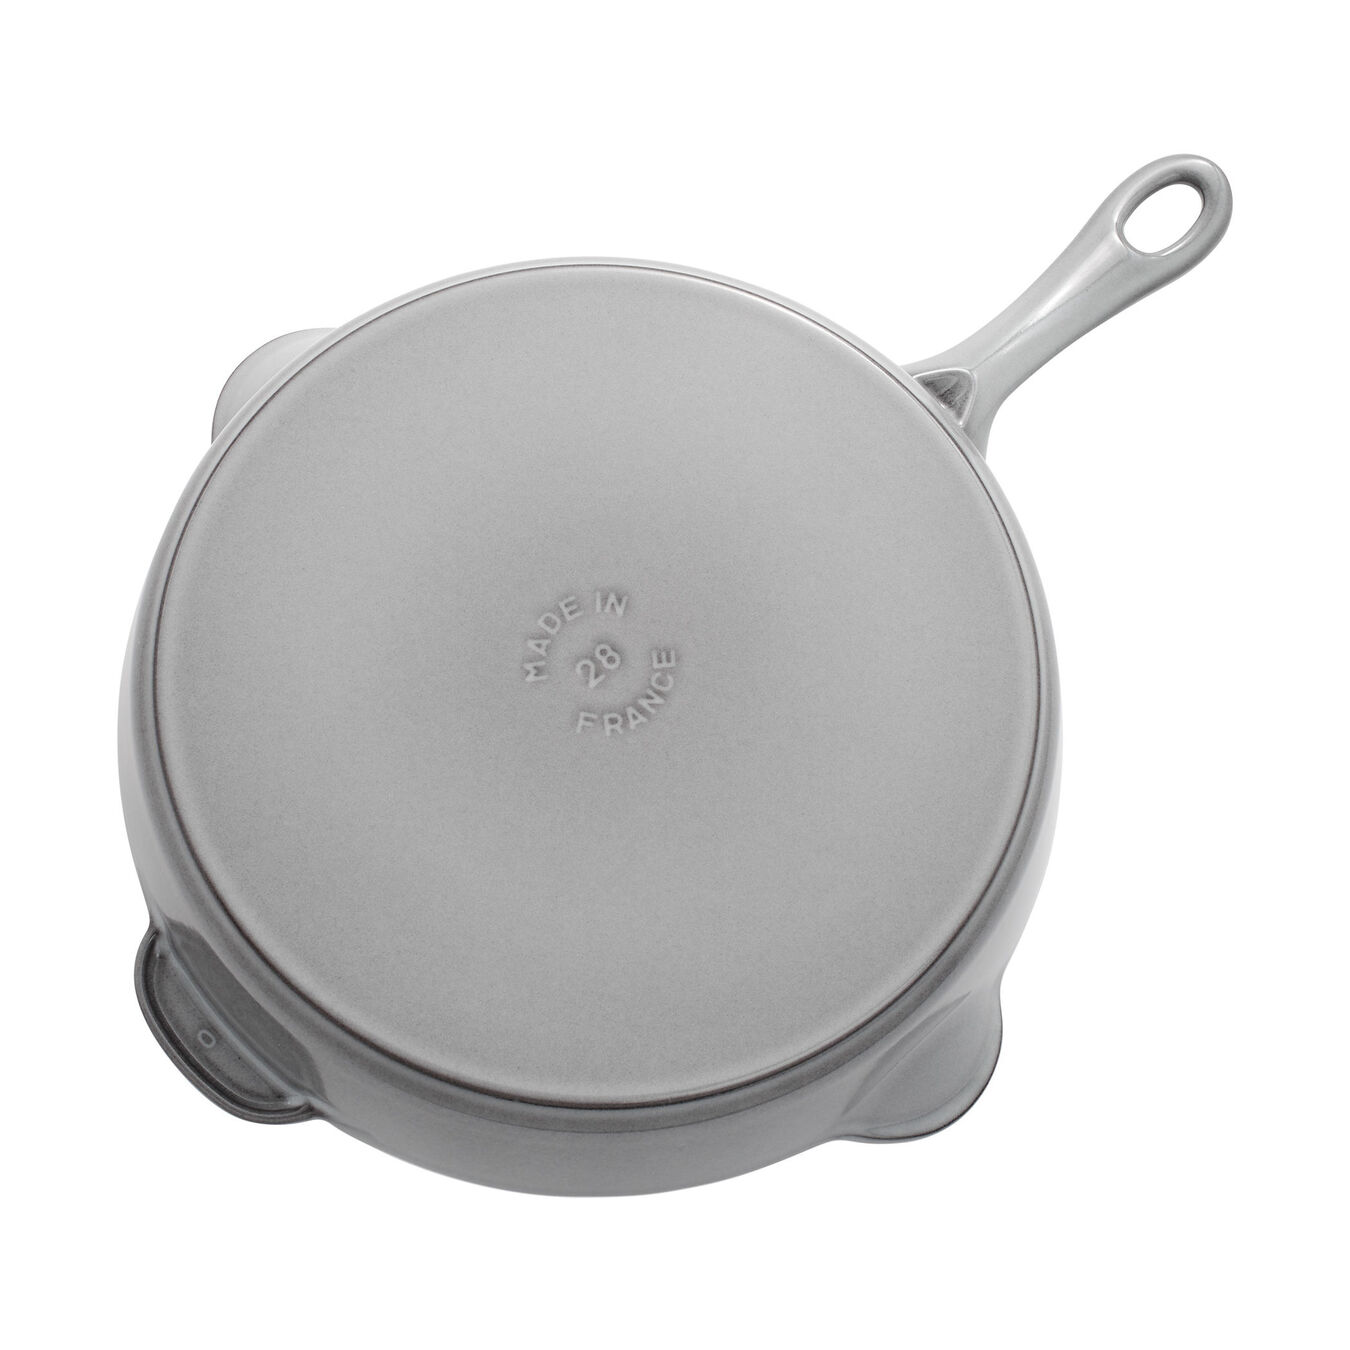 11'' Traditional Skillet - Graphite Grey,,large 4